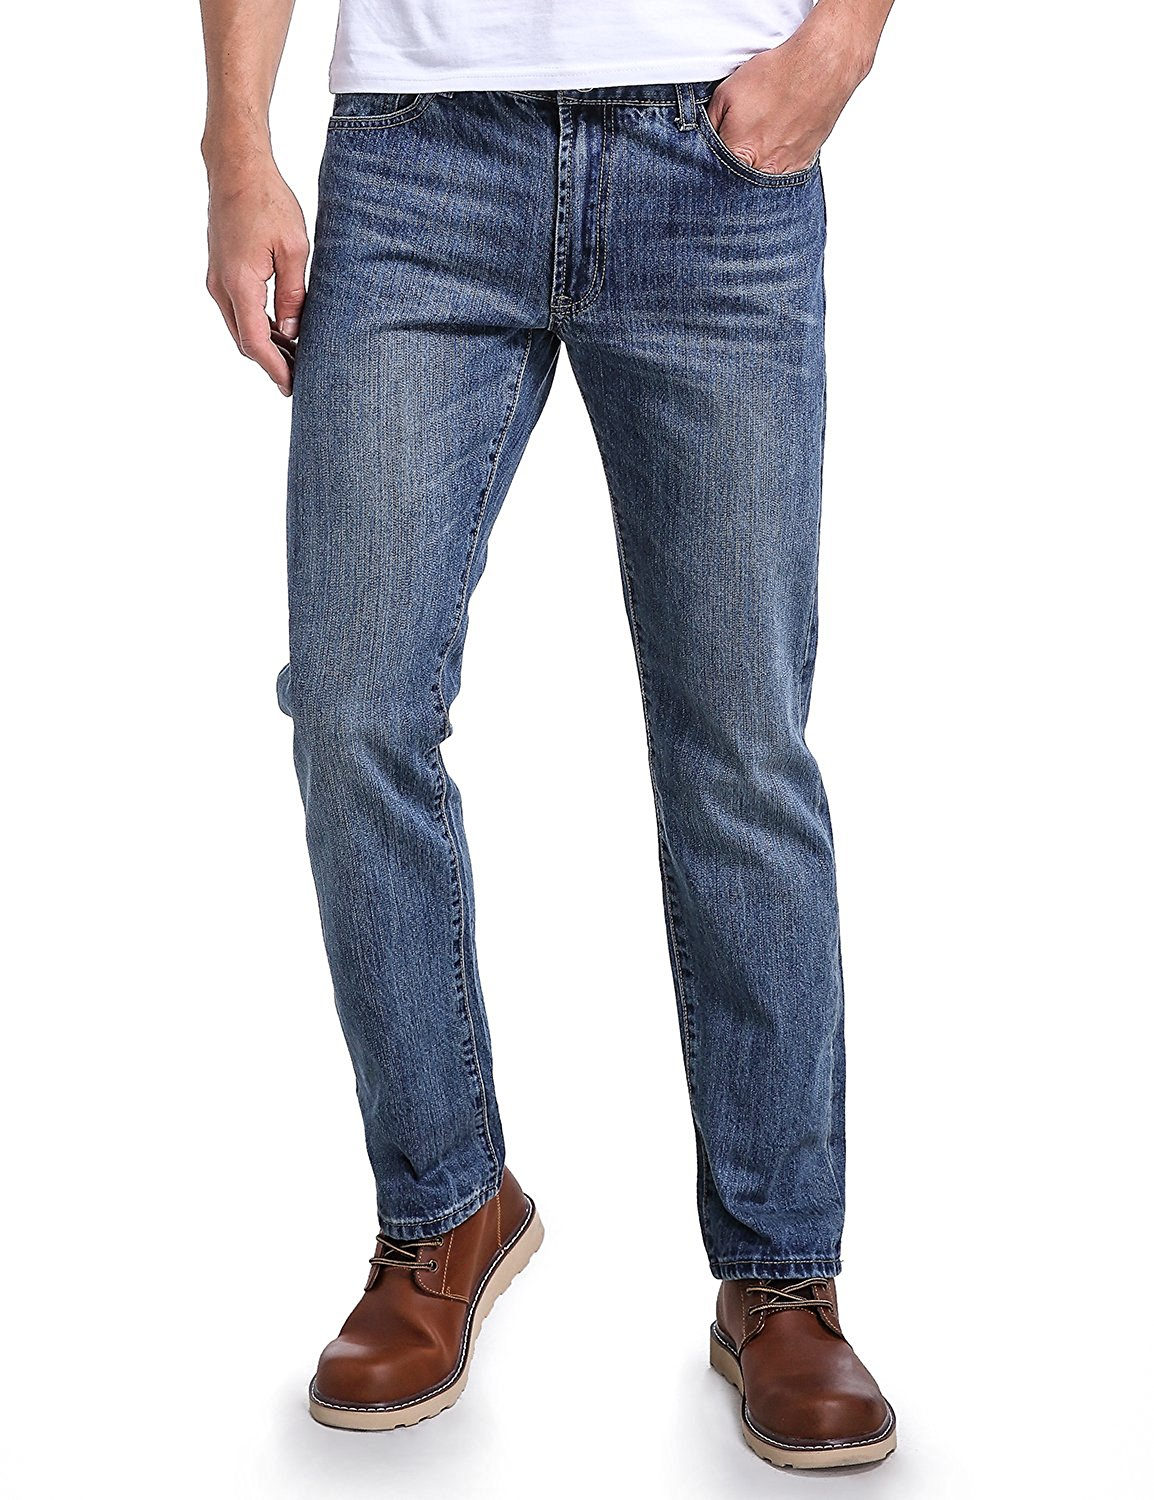 efe2b160 Get Quotations · Eaglide Mens Relaxed Fit Comfort Straight Leg Jeans, Five  Pocket Fashionable Jeans 36W × 34L